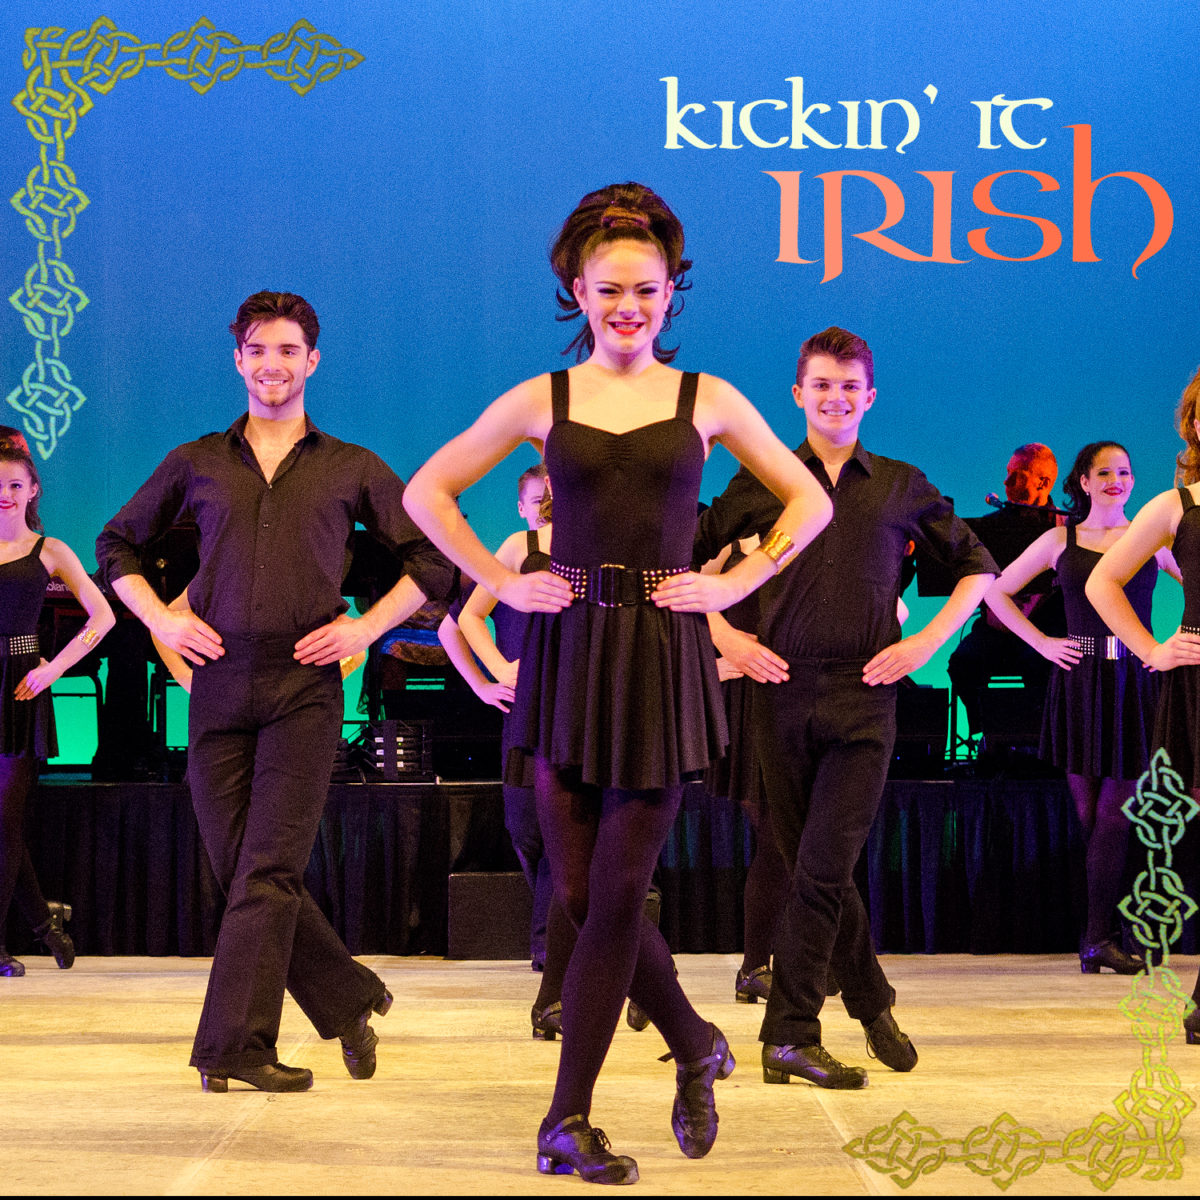 Kids love the Kickin' It Irish Matinee